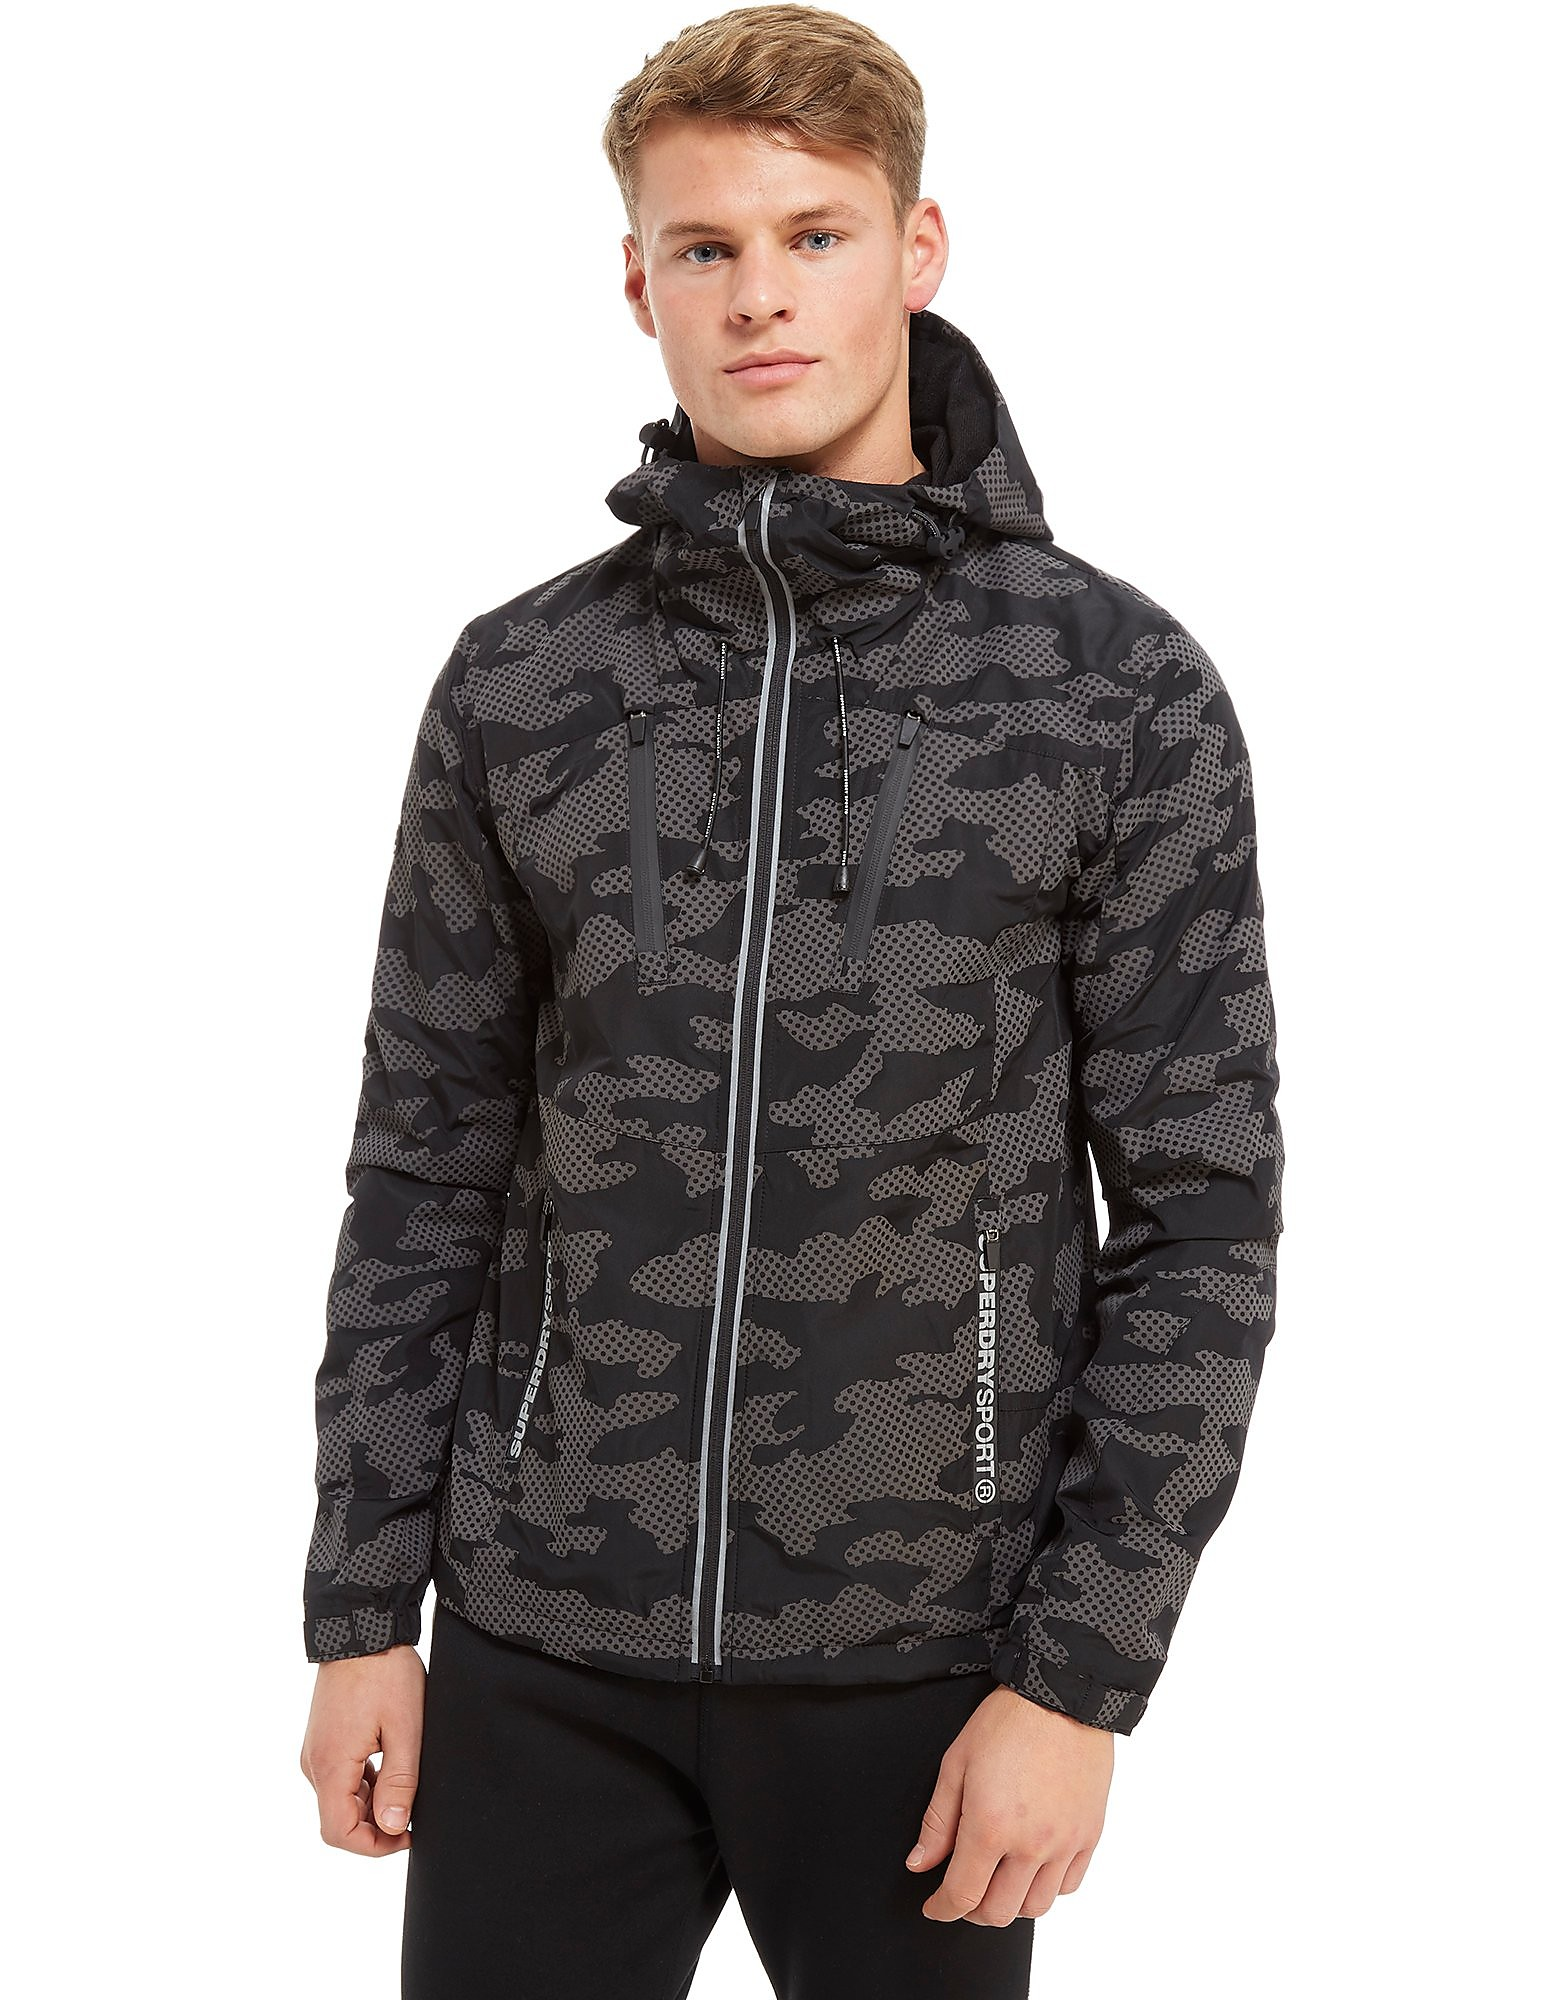 Superdry Sport Tech Cagoule Reflective Jacket